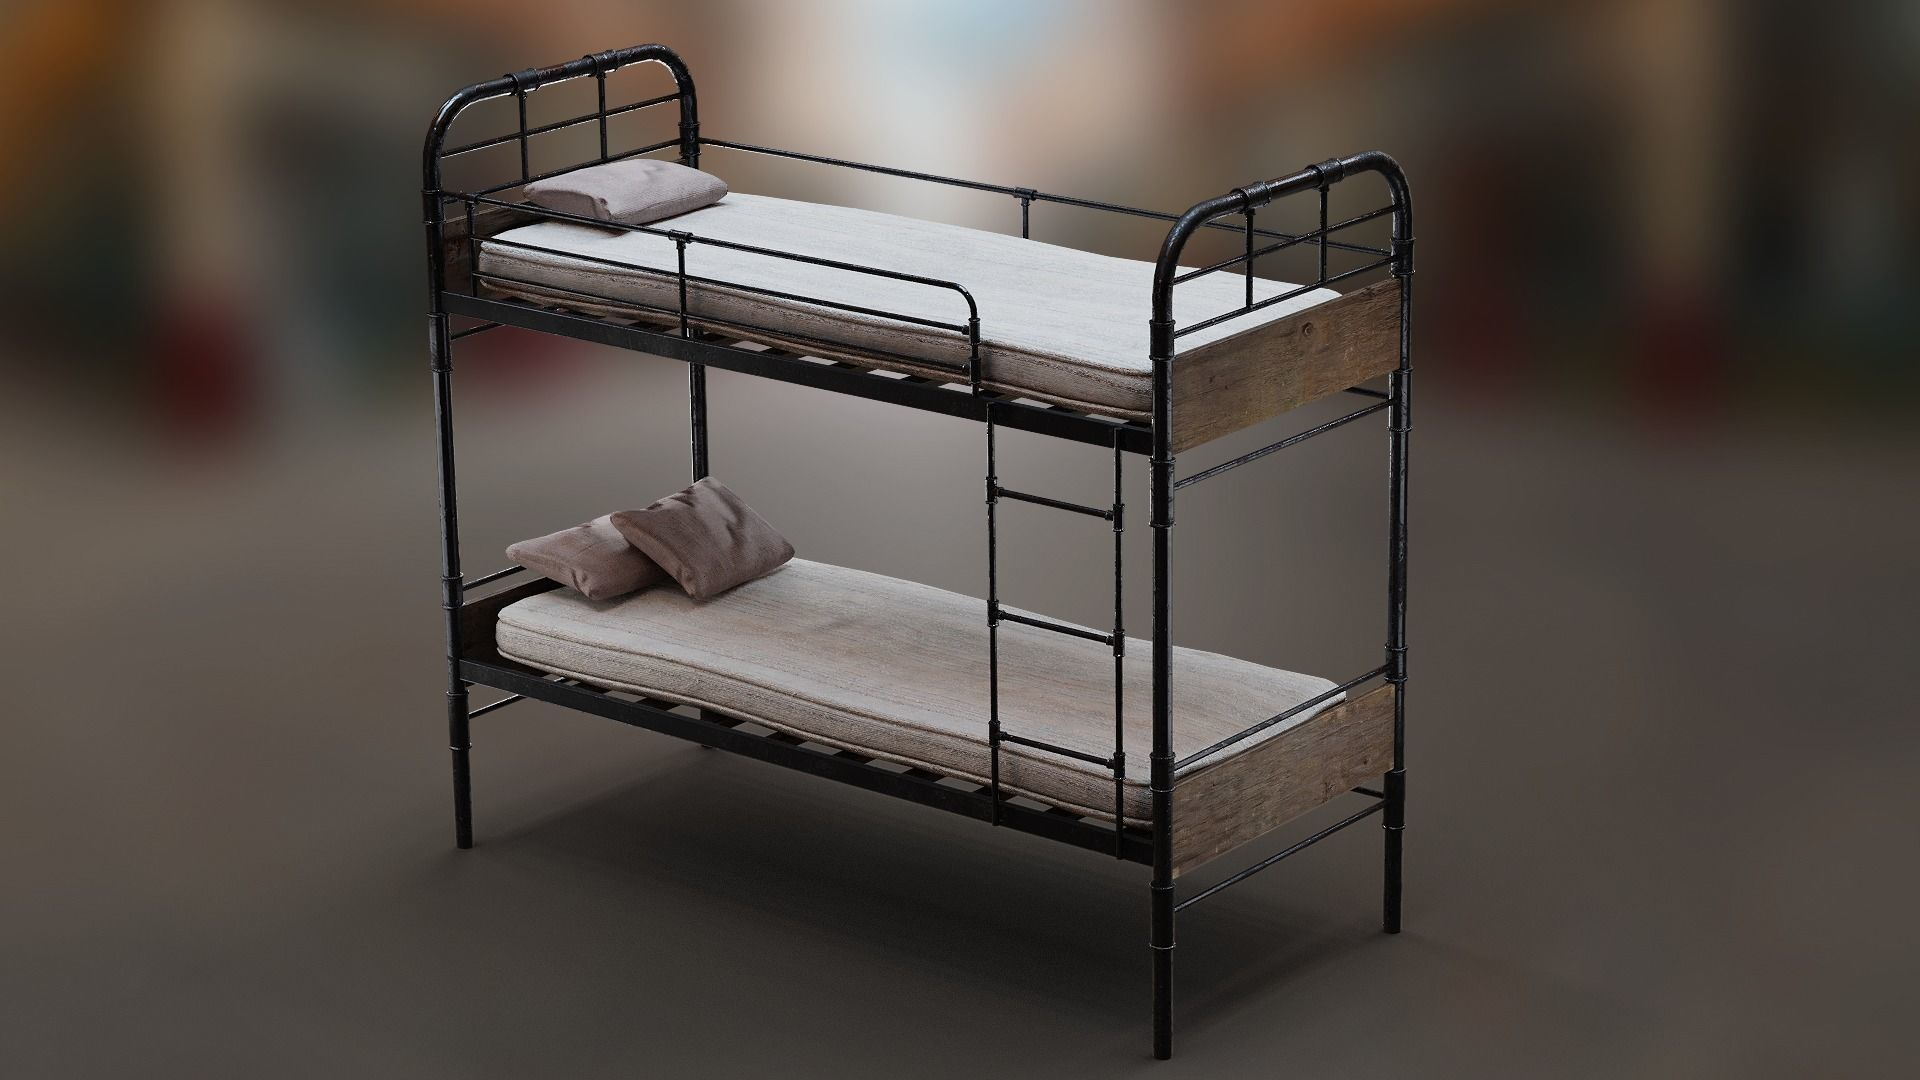 PBR Bunk Bed with Mattress and Pillows